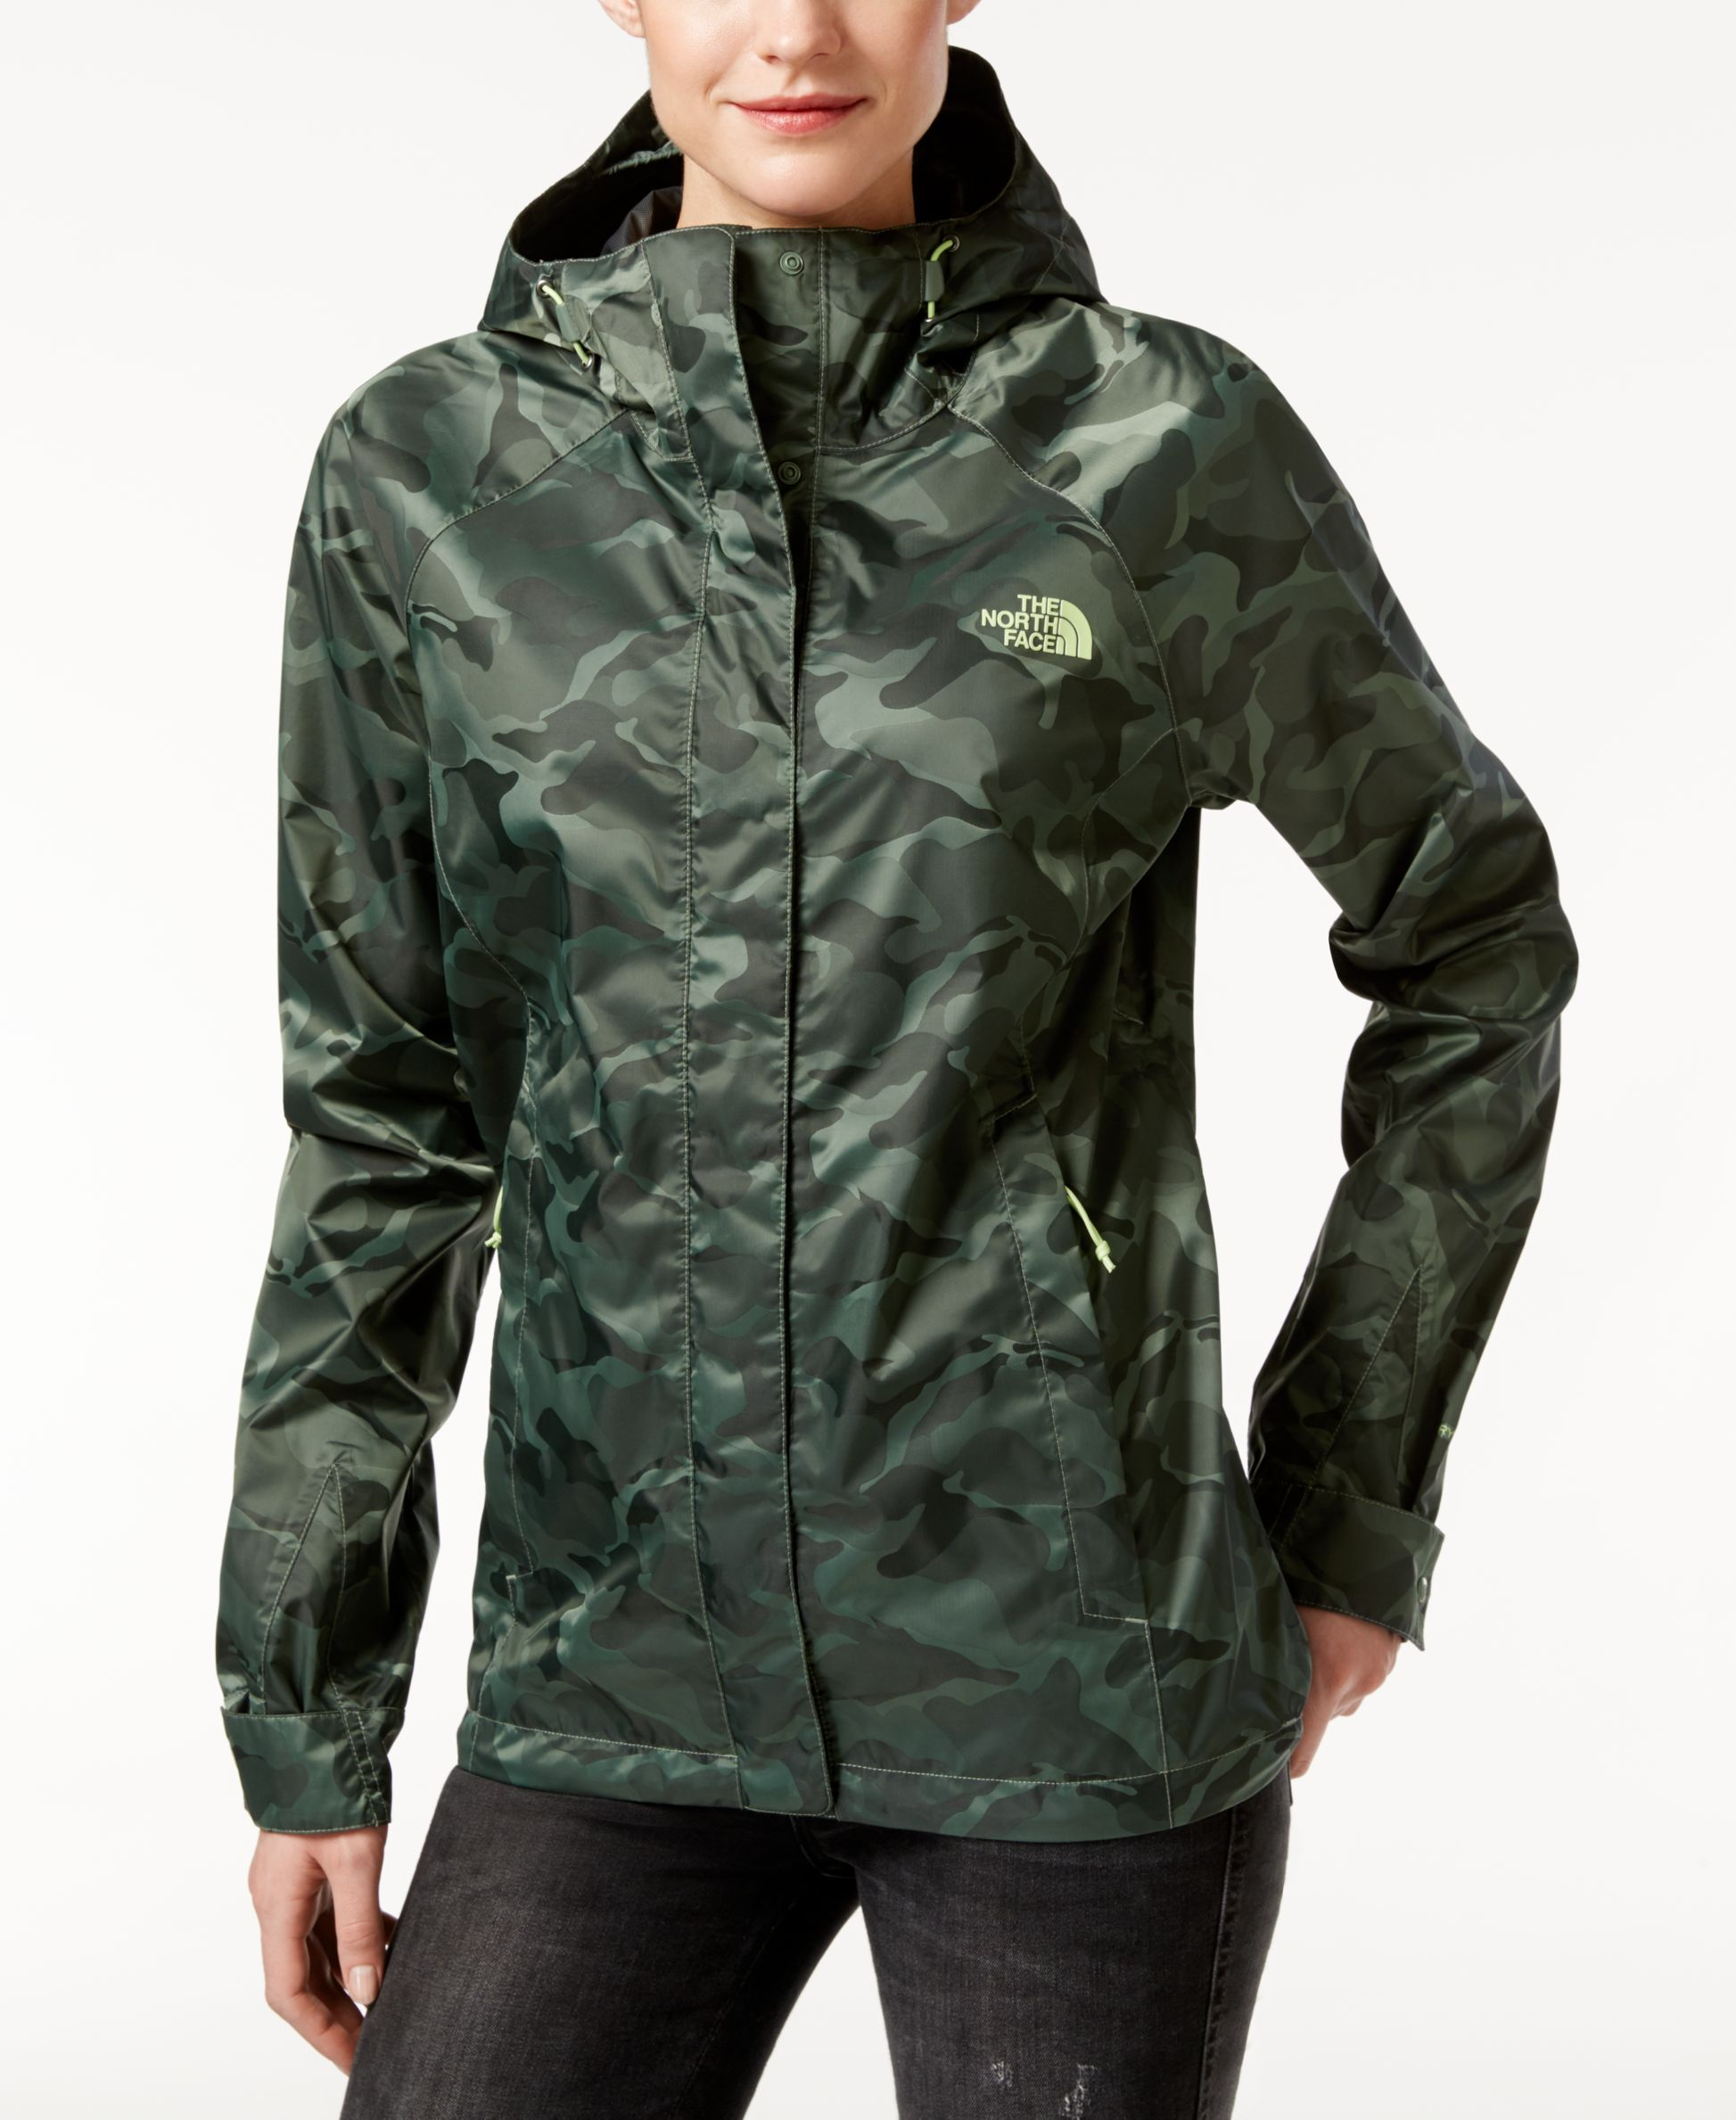 428d7d8e1585e The North Face Venture Camo-Print Waterproof Jacket | Praying For ...